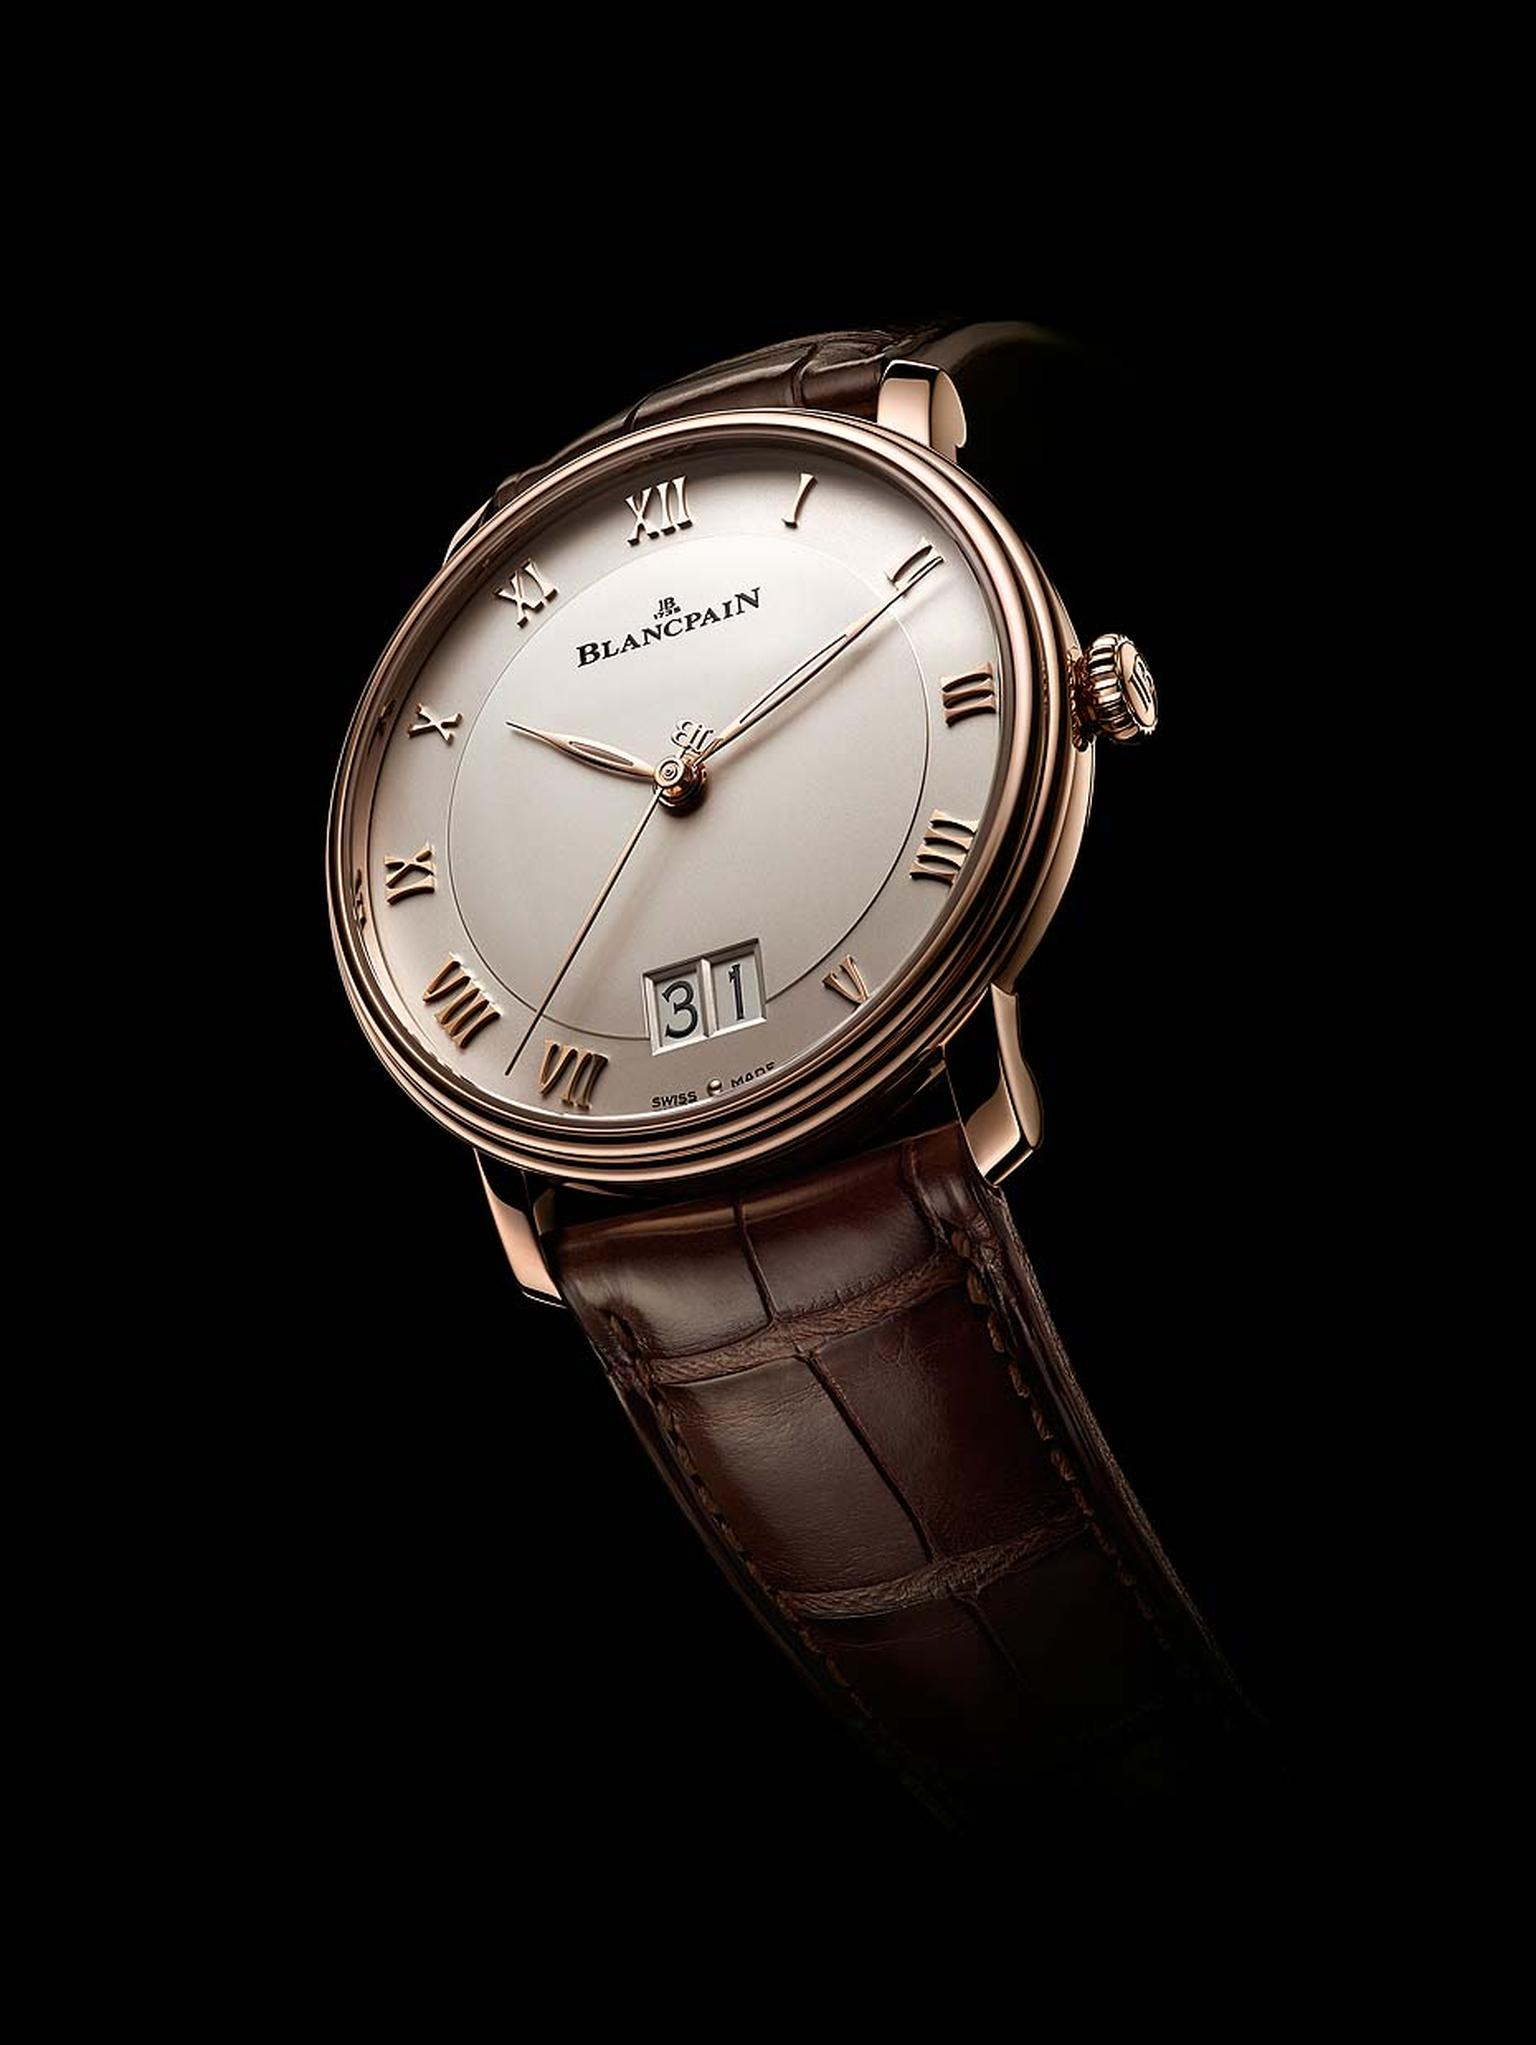 The new Villeret Grande Date from Blancpain watches operates with the new automatic calibre 6950, allowing the date to change instantly at midnight without adding any extra height to the movement's elegant profile.